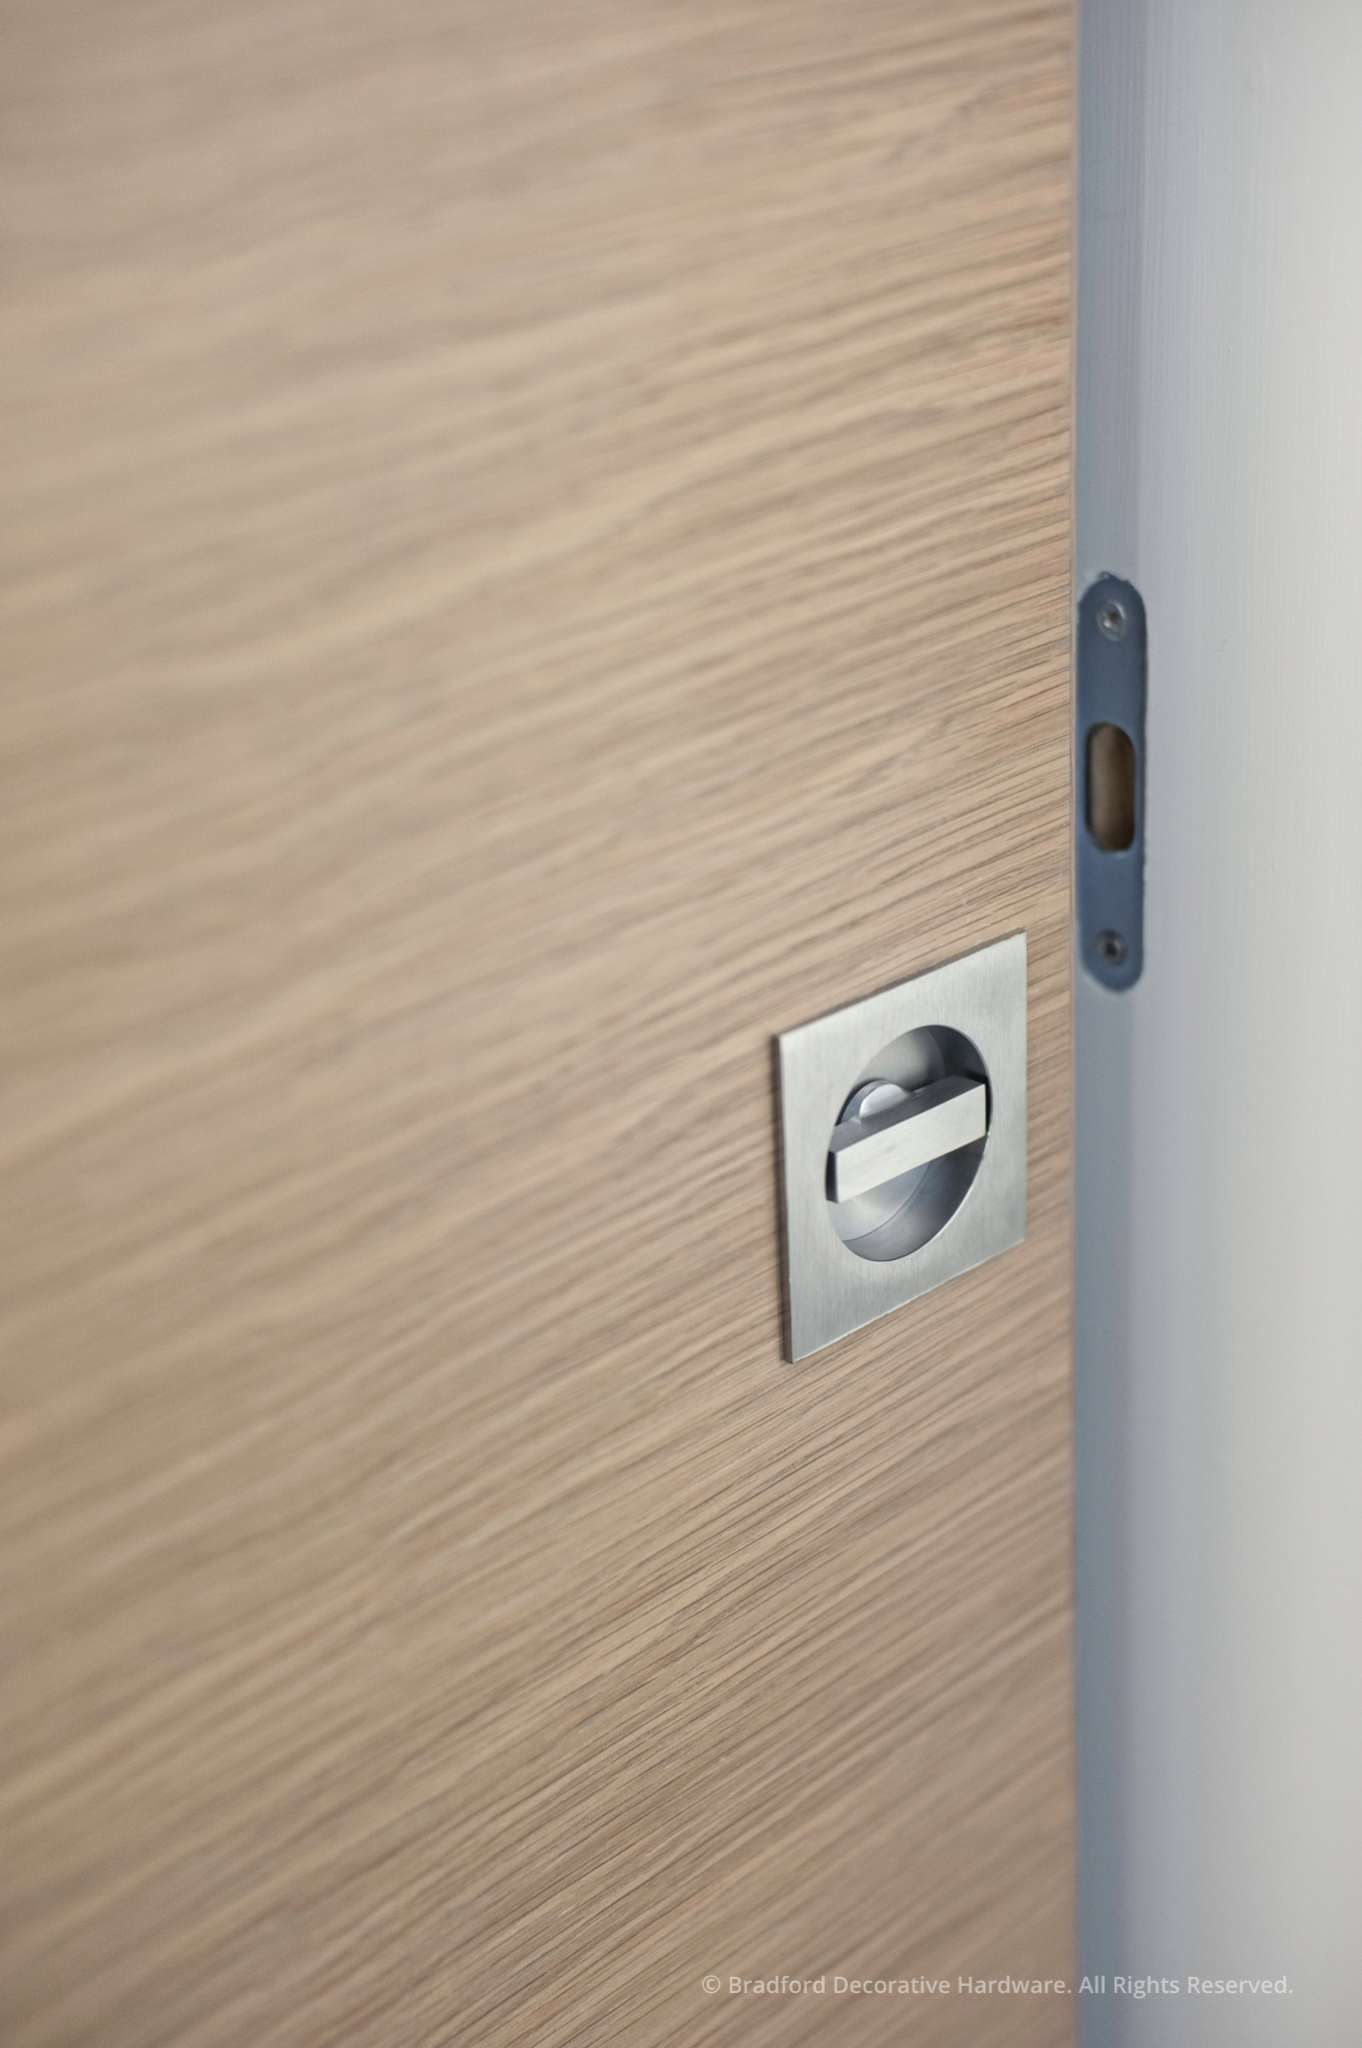 Pocket door bathroom lock - Columbo Pocket Door Lock Id311lk Http Www Orionhardware Com Details_colombo_doorlevers